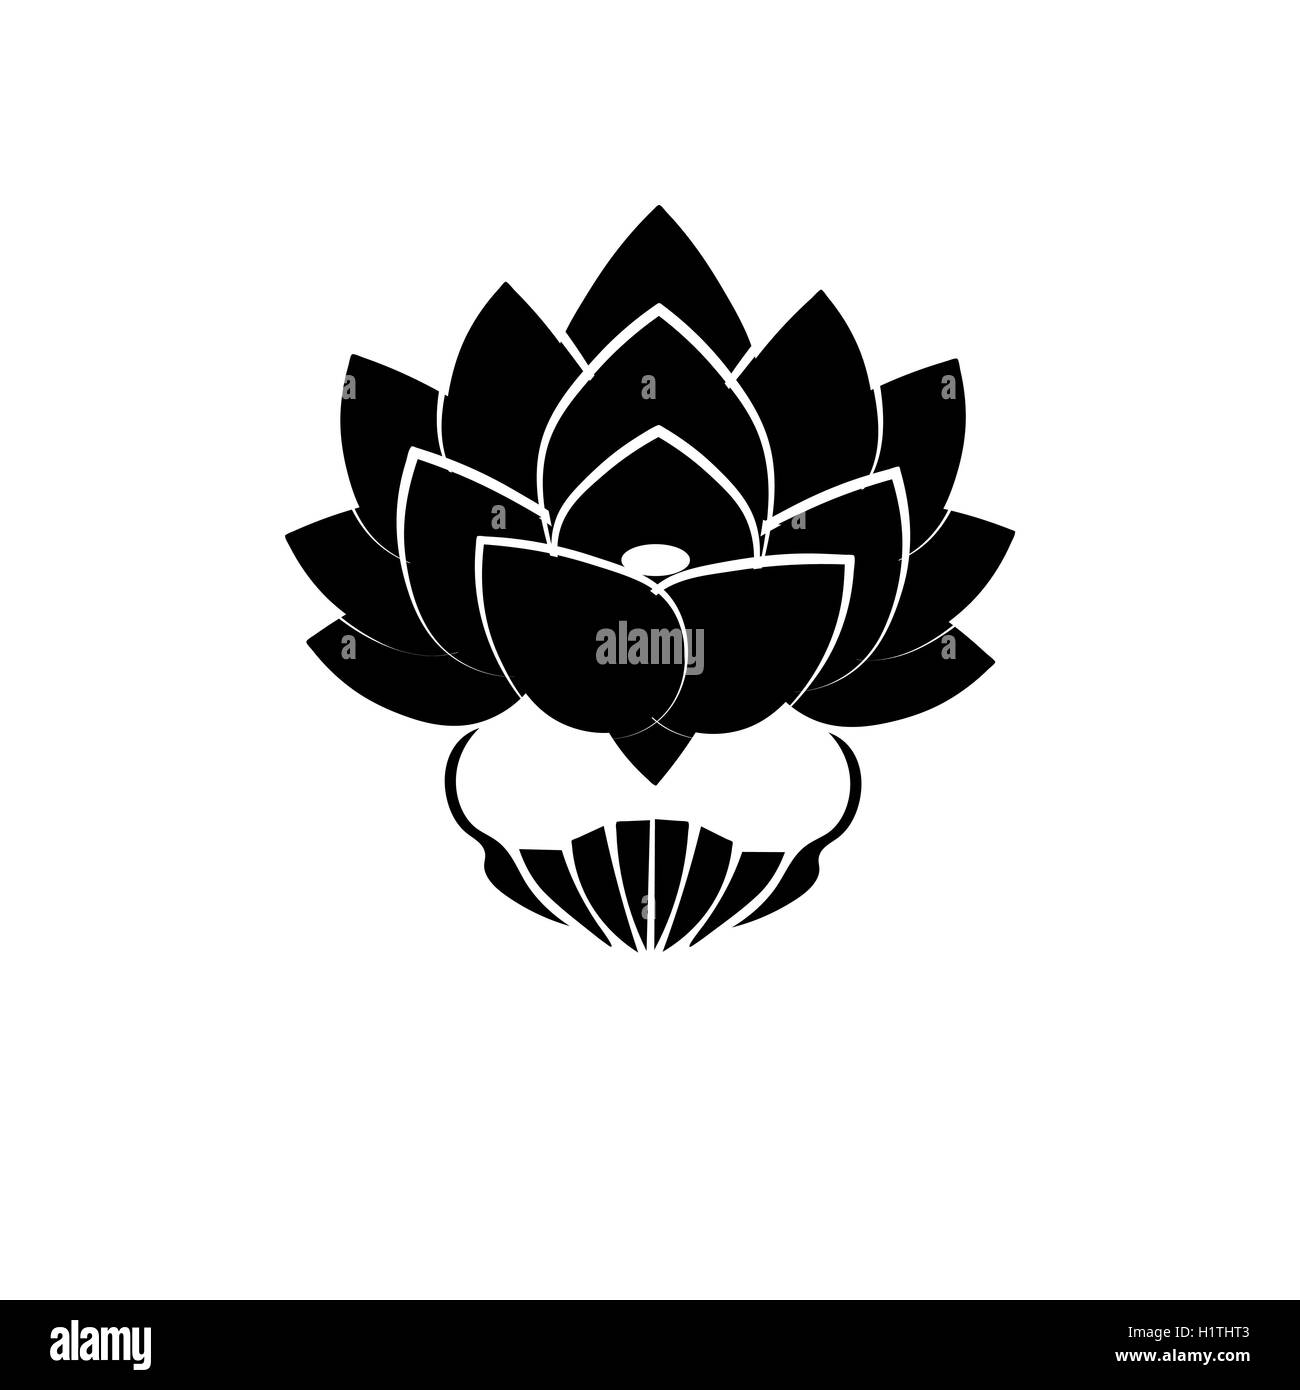 Black Stylized Image Of A Lotus Flower On A White Background The